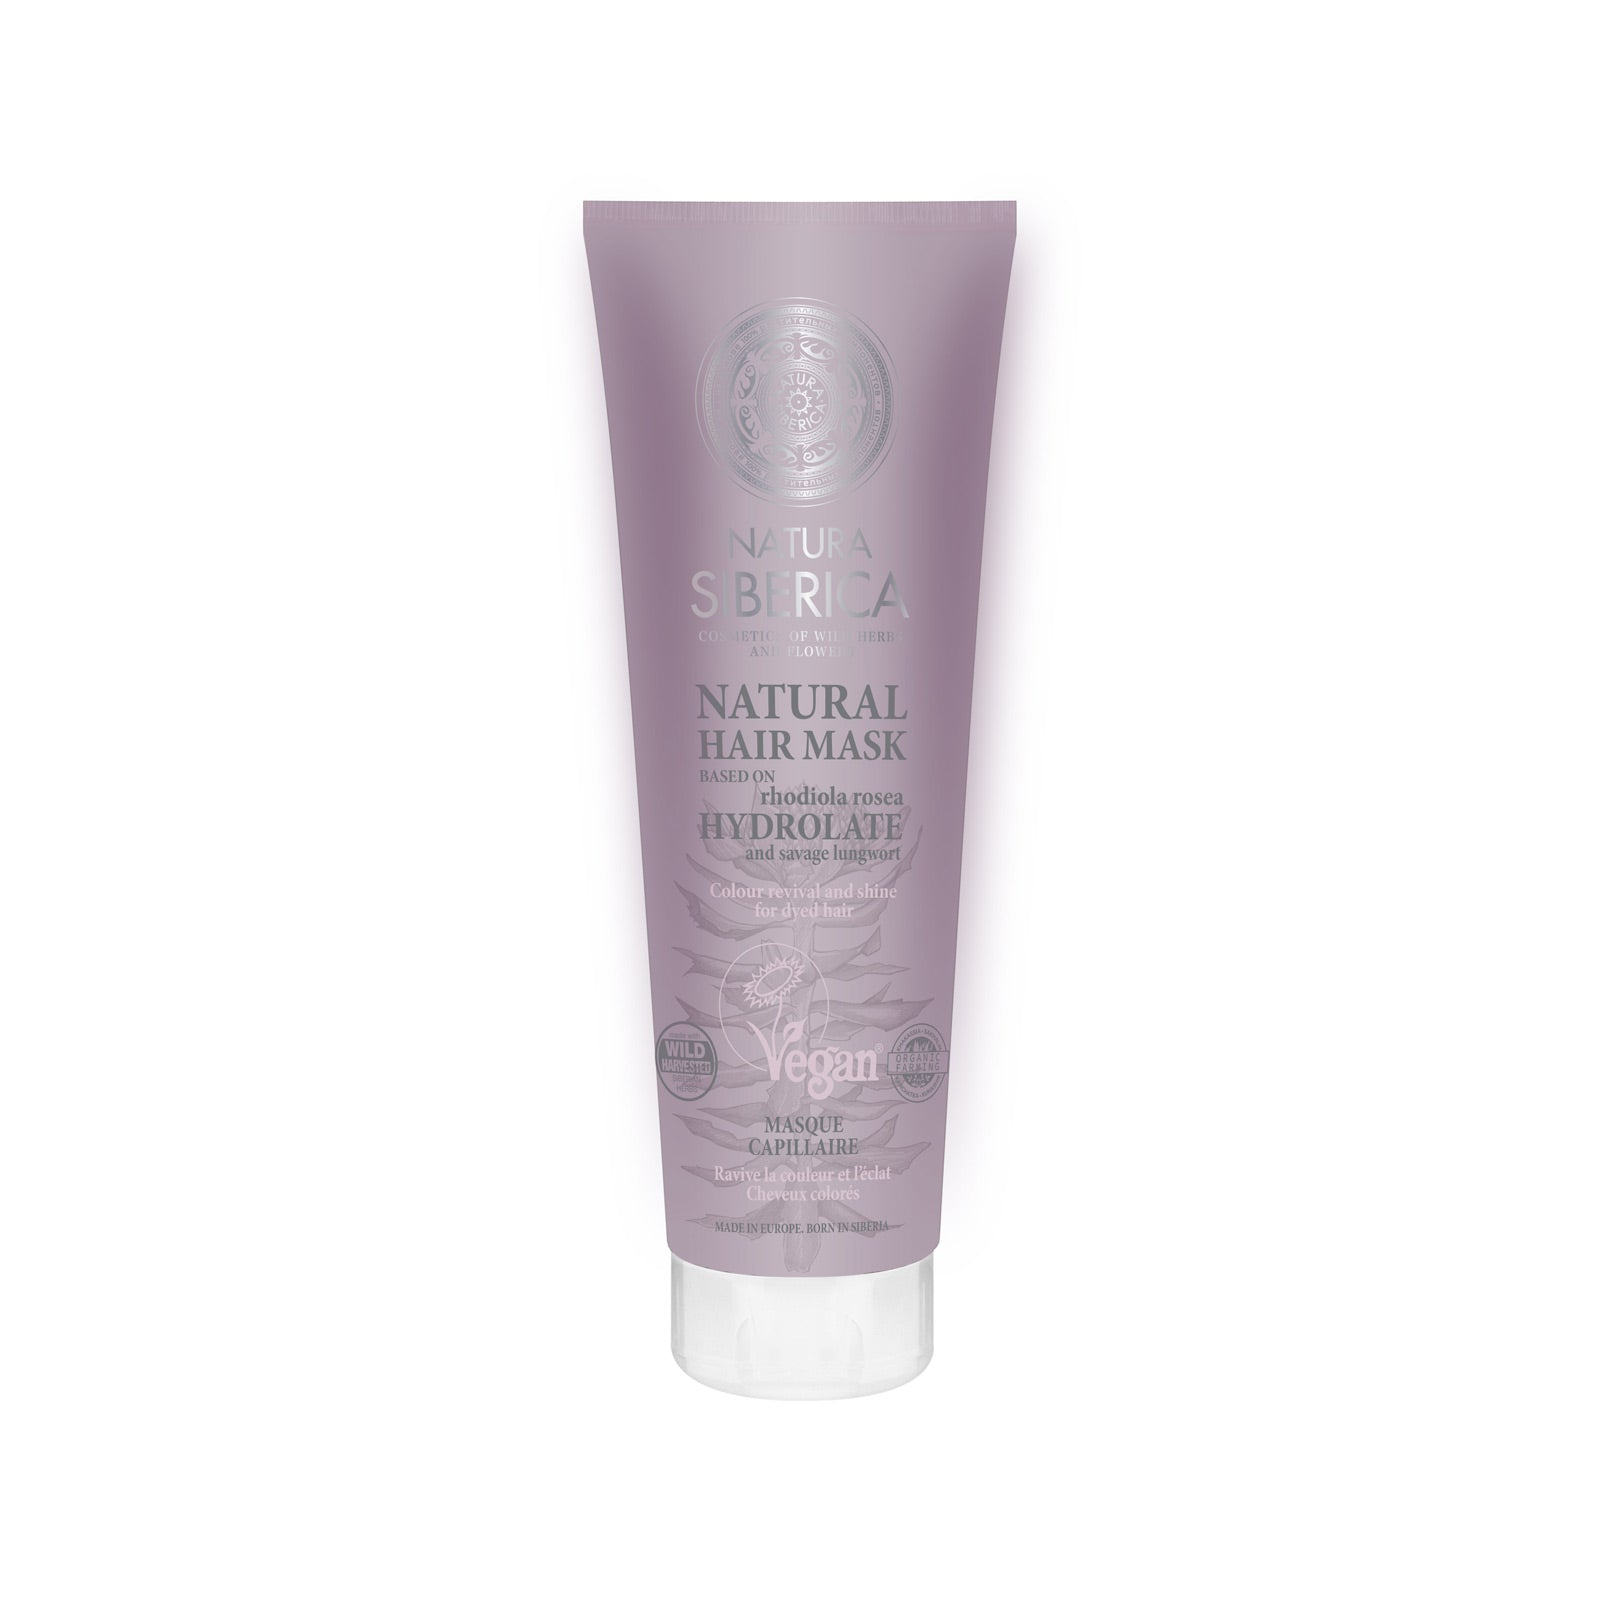 Colour Revival and Shine Hair Mask. For dyed hair, 200 ml